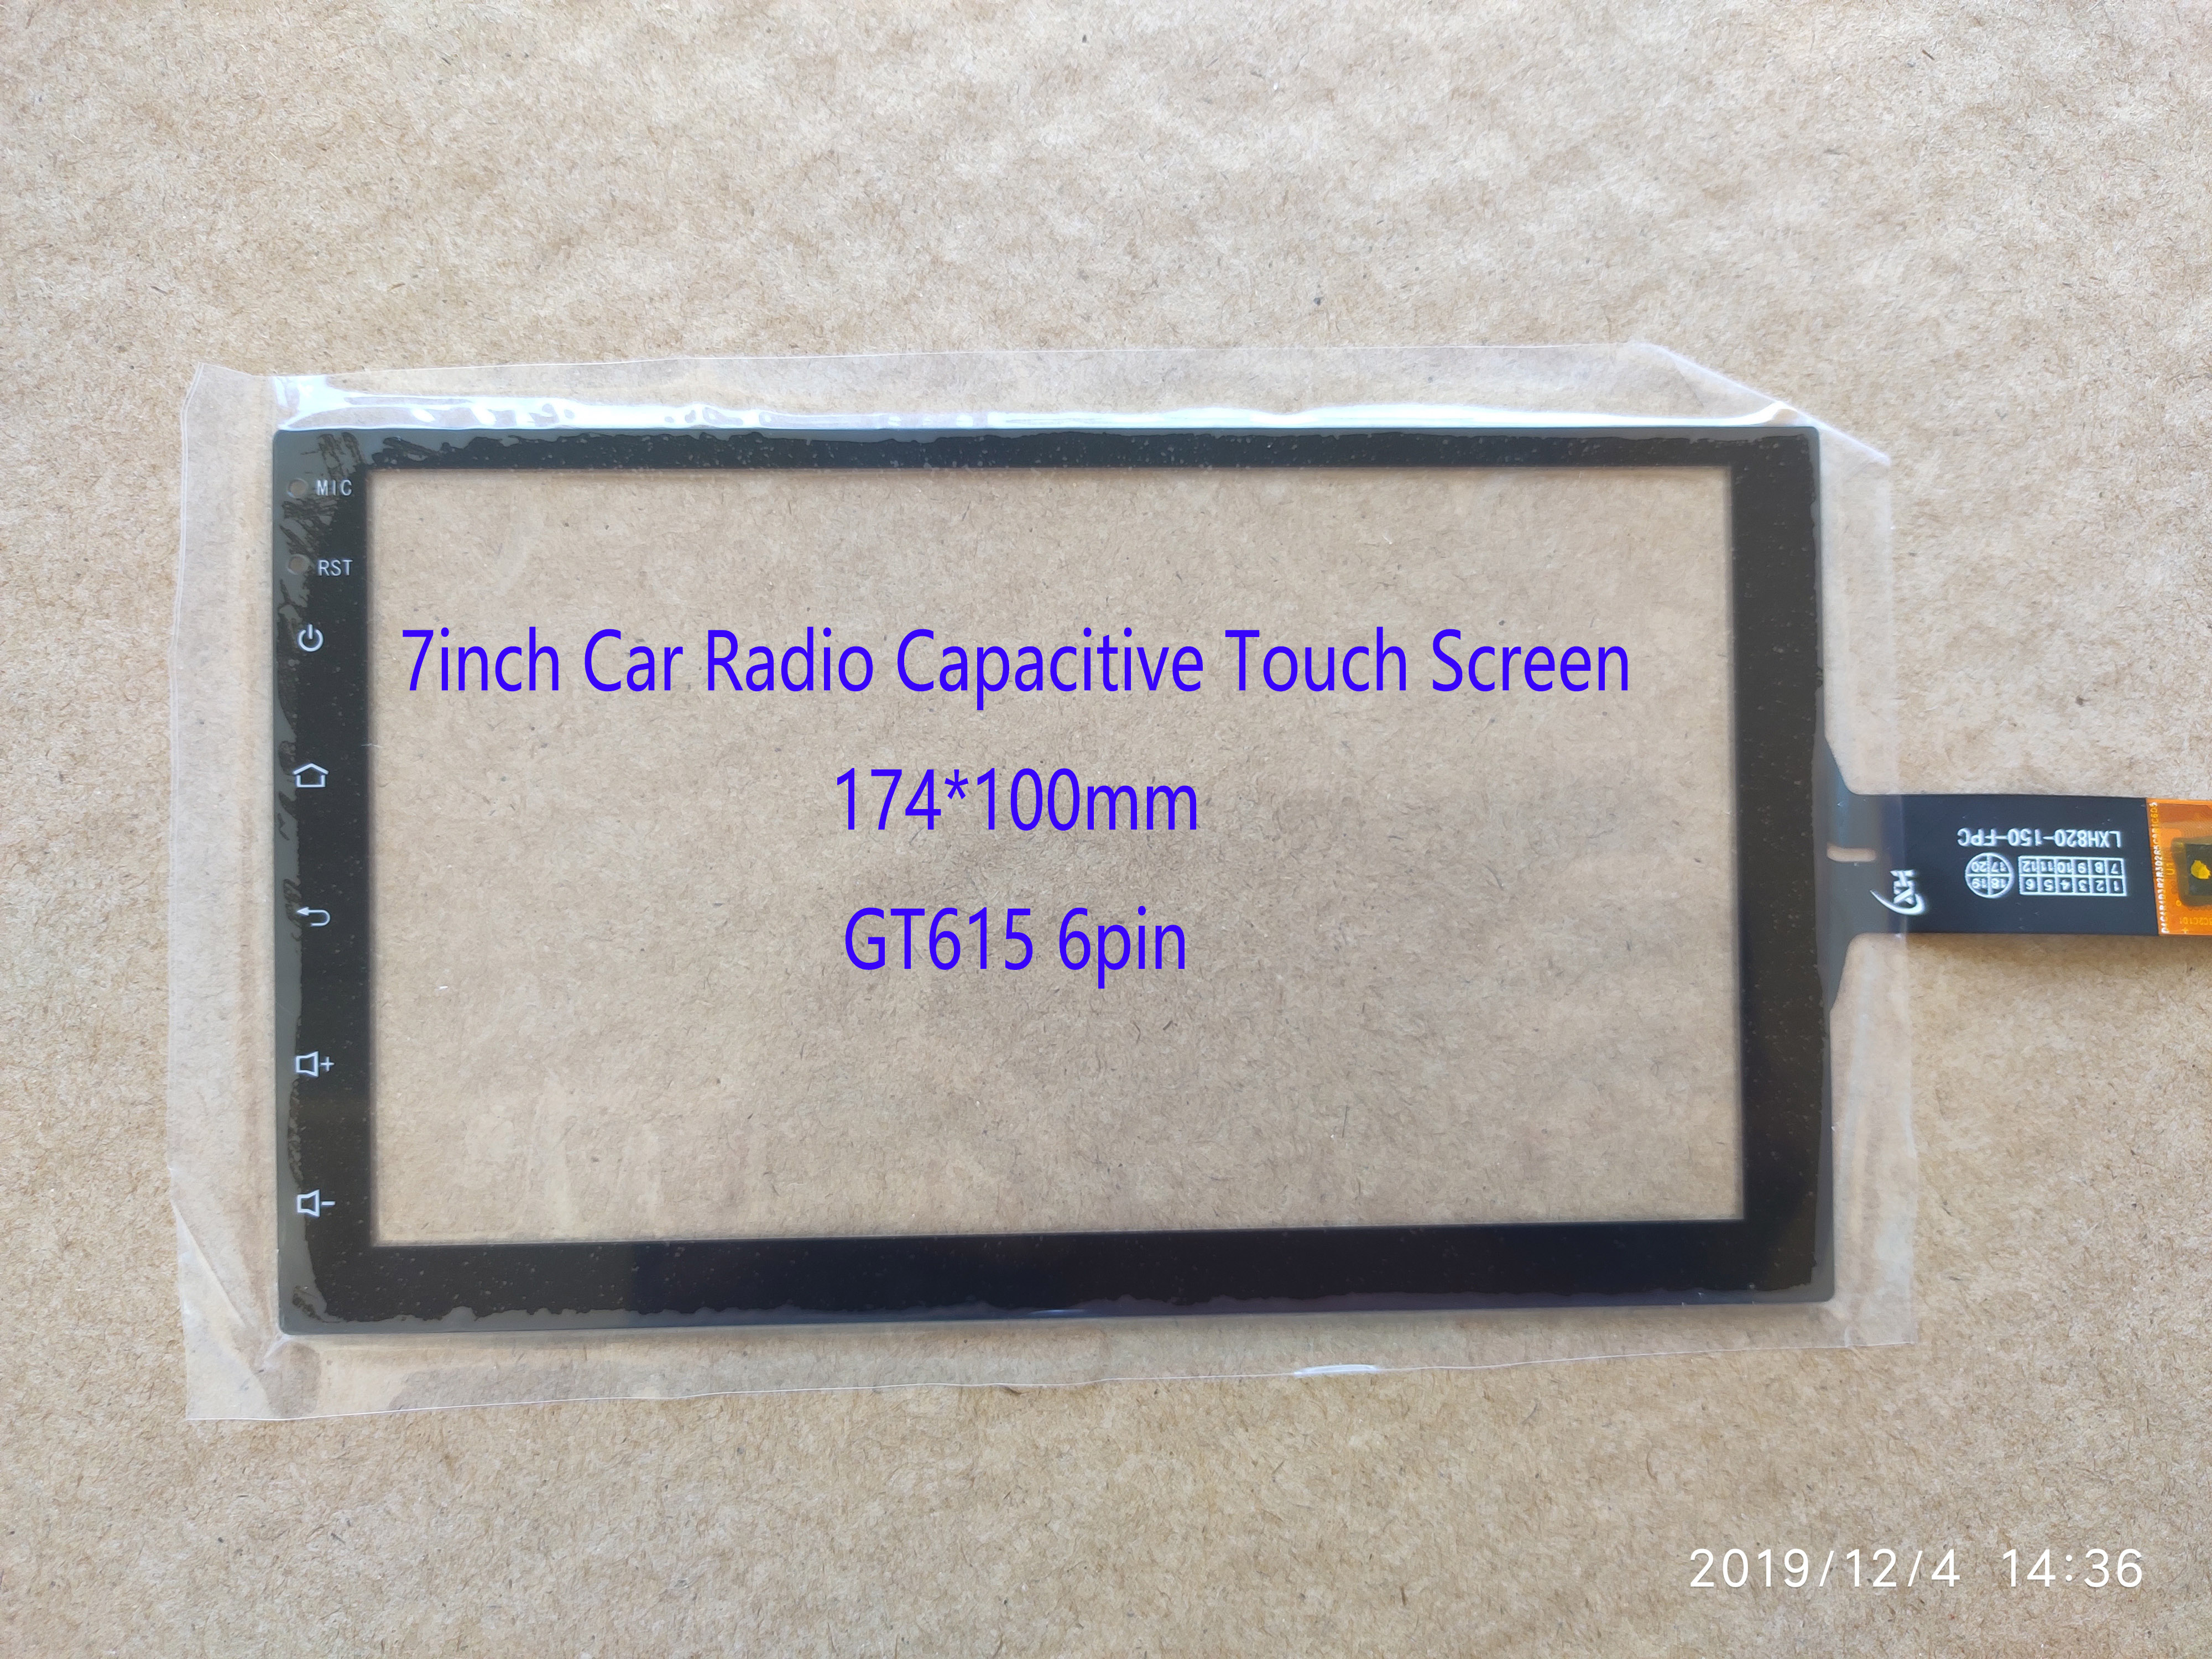 7inch Car Radio Carpc  Capacitive Touch Screen 174*100mm 6pin GT615 LXH820-150-FPC